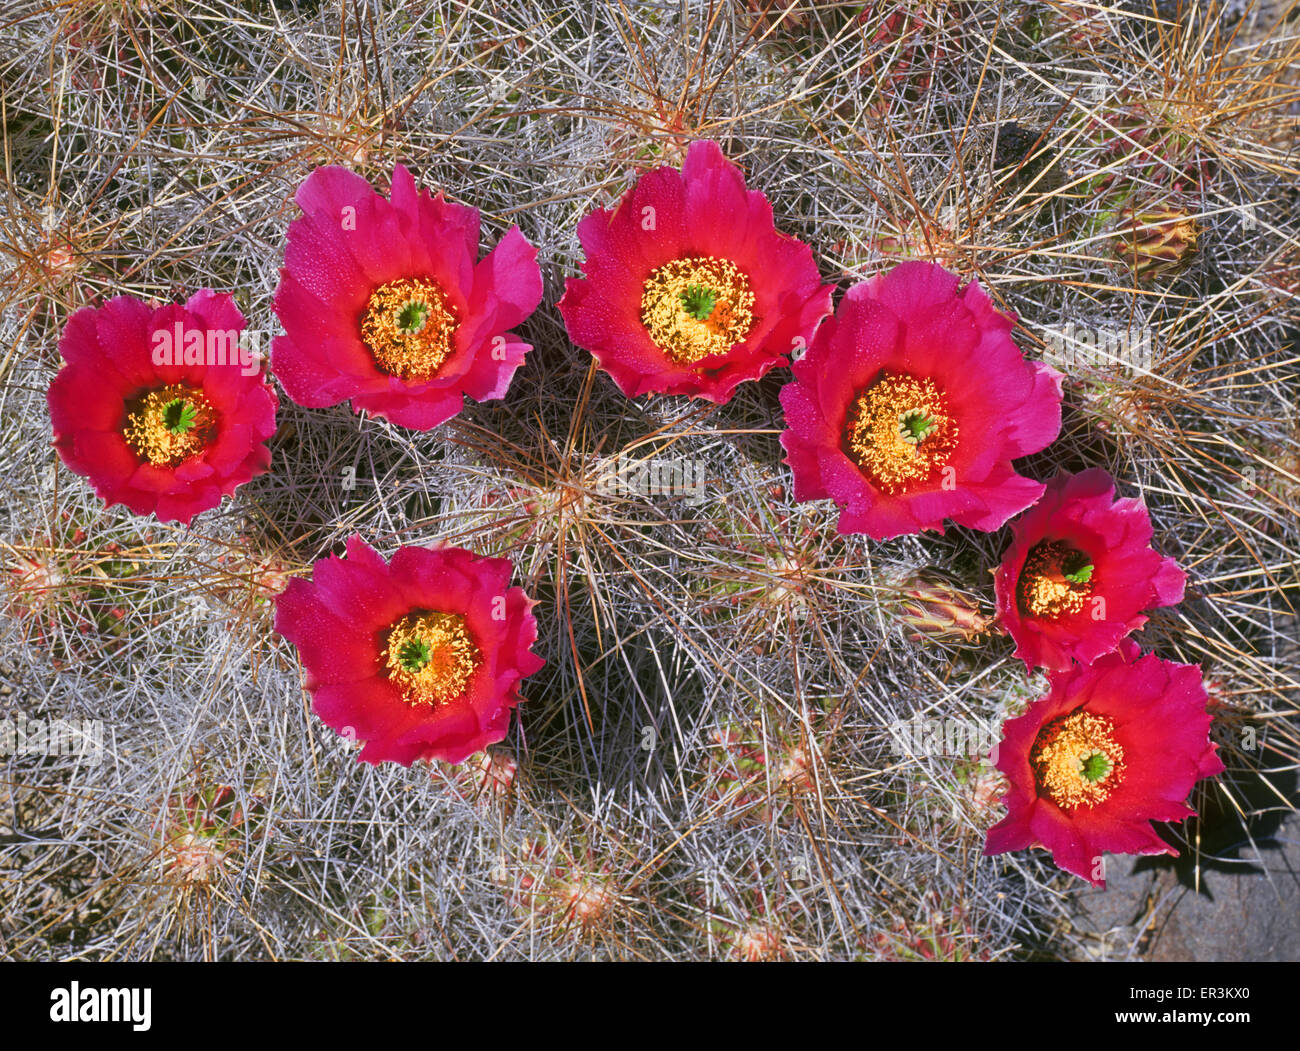 The blooms of a rainbow cactus, in the genus Echinocereus, growing along the eastern edge of New Mexico's Bootheel - Stock Image